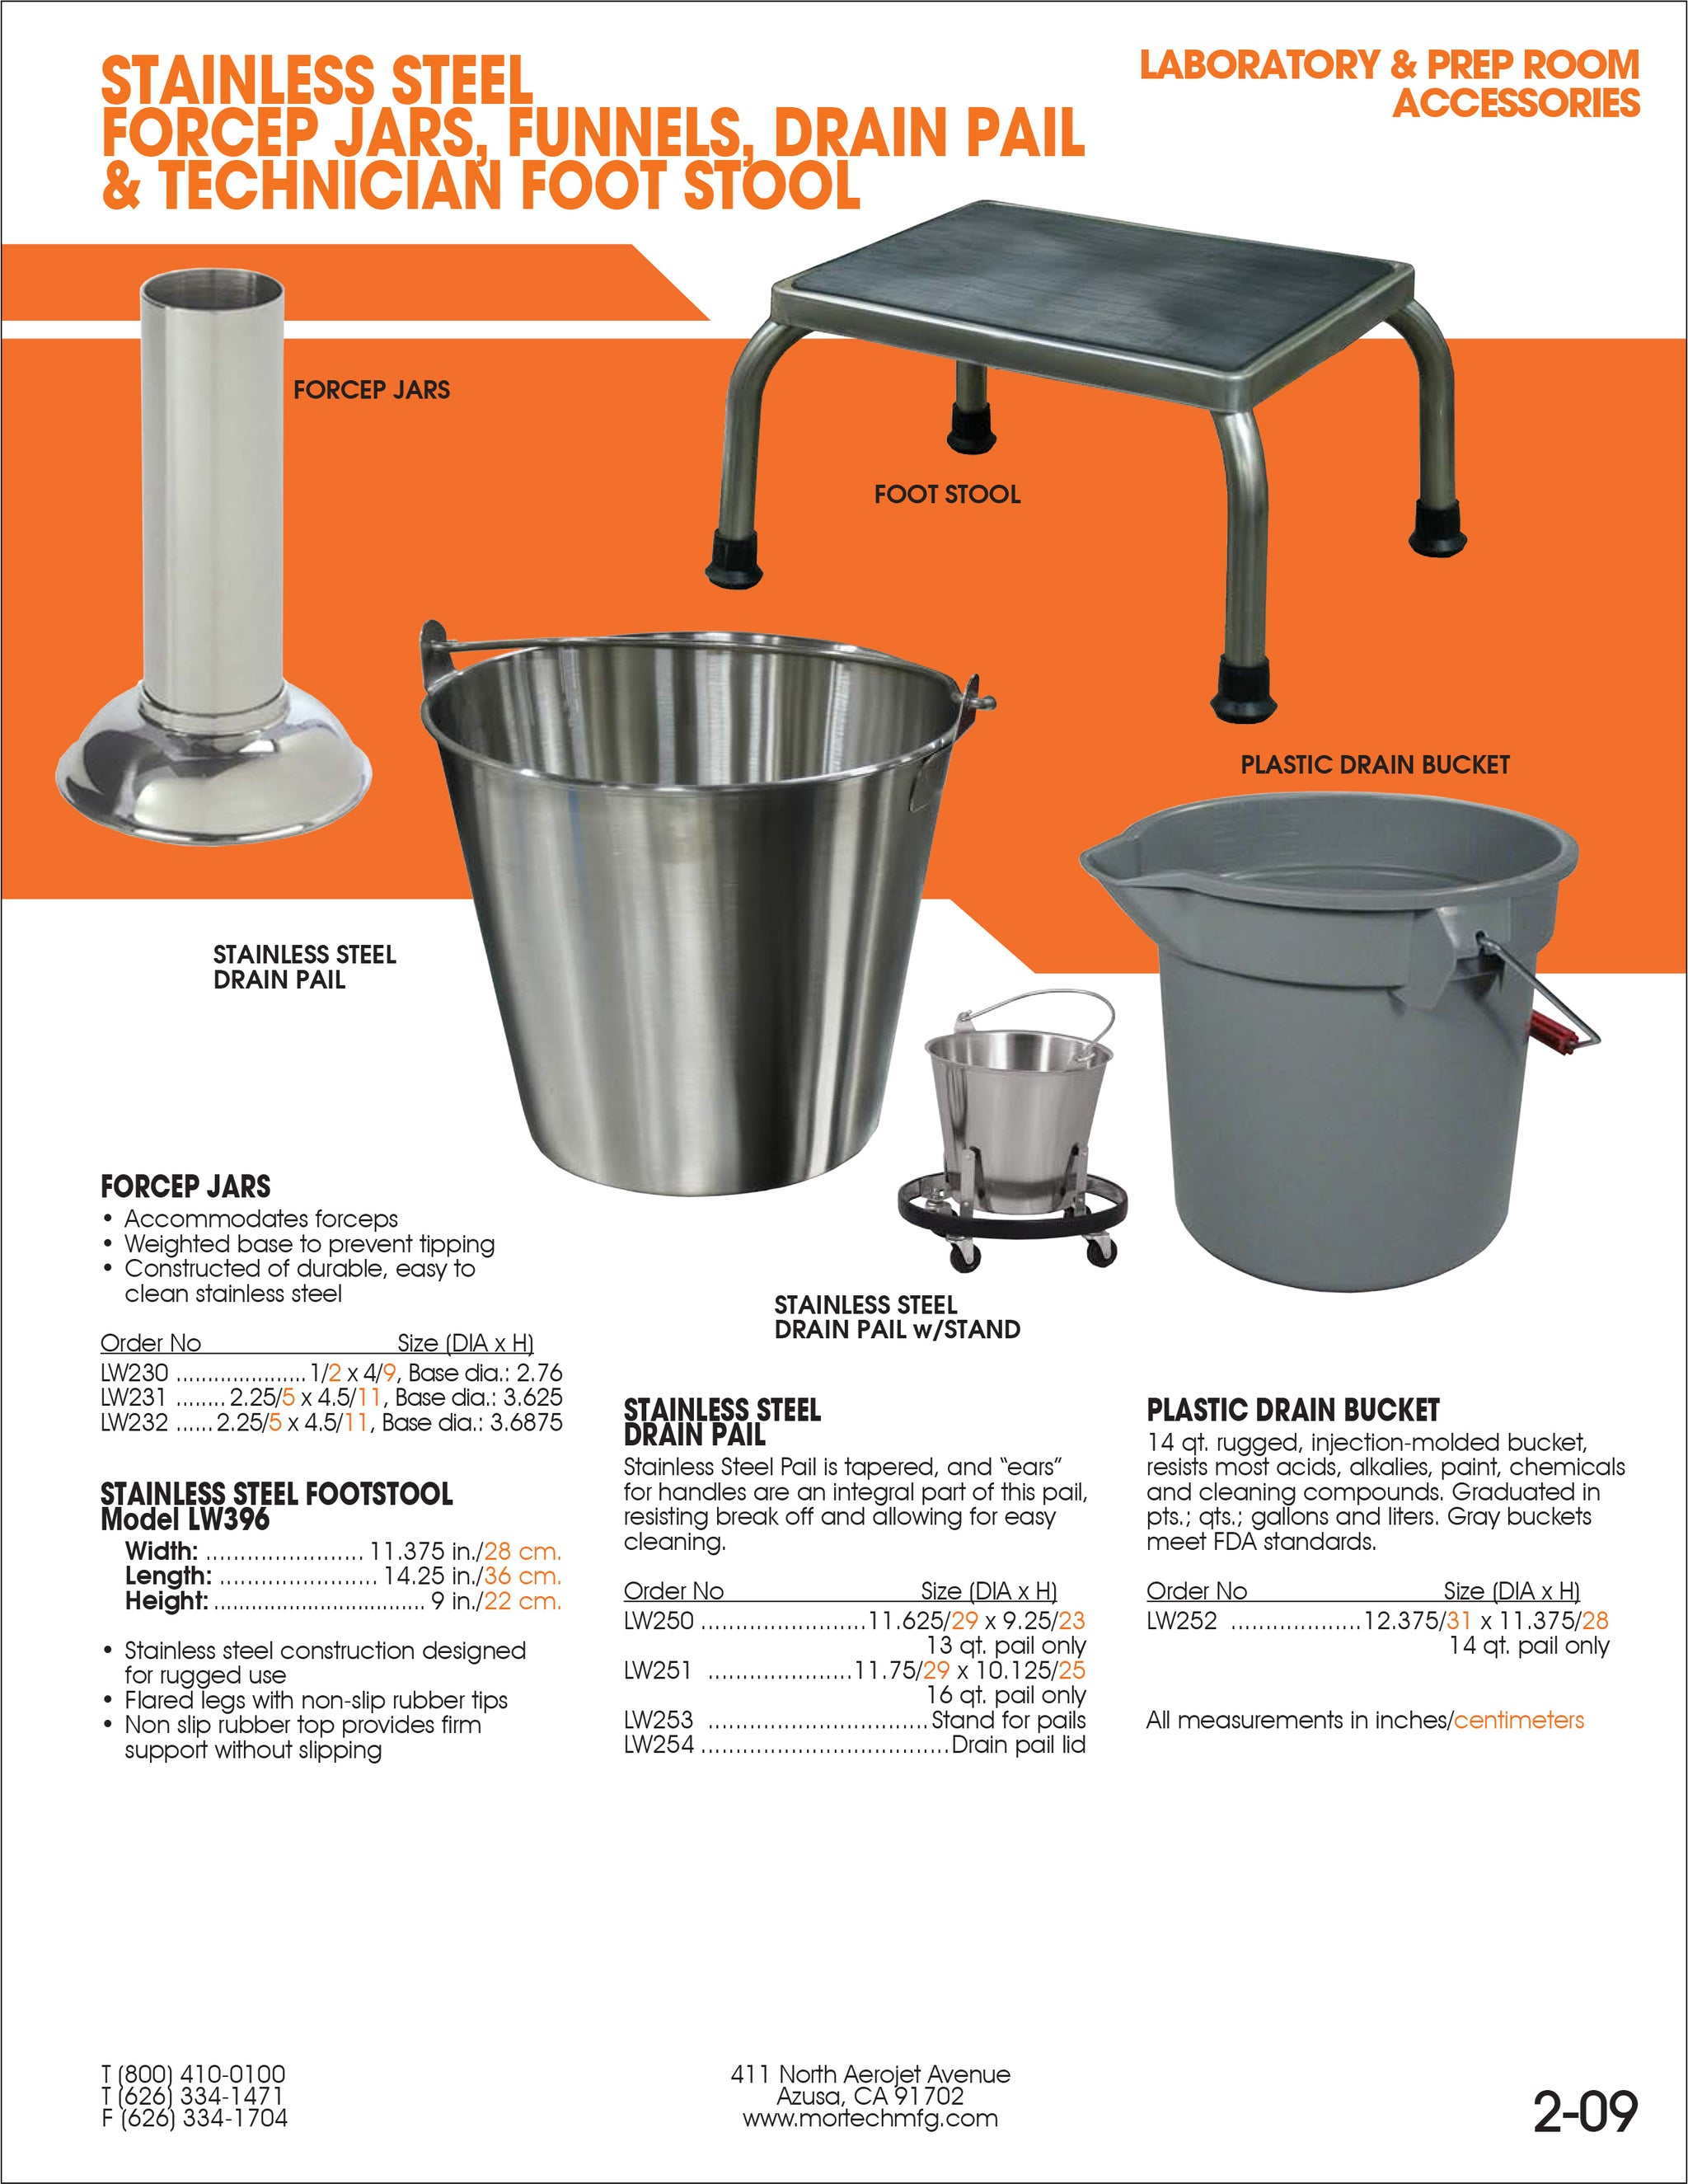 Drain Pails-Laboratory Accessory-Mortech Manufacturing Company Inc. Quality Stainless Steel Autopsy, Morgue, Funeral Home, Necropsy, Veterinary / Anatomy, Dissection Equipment and Accessories